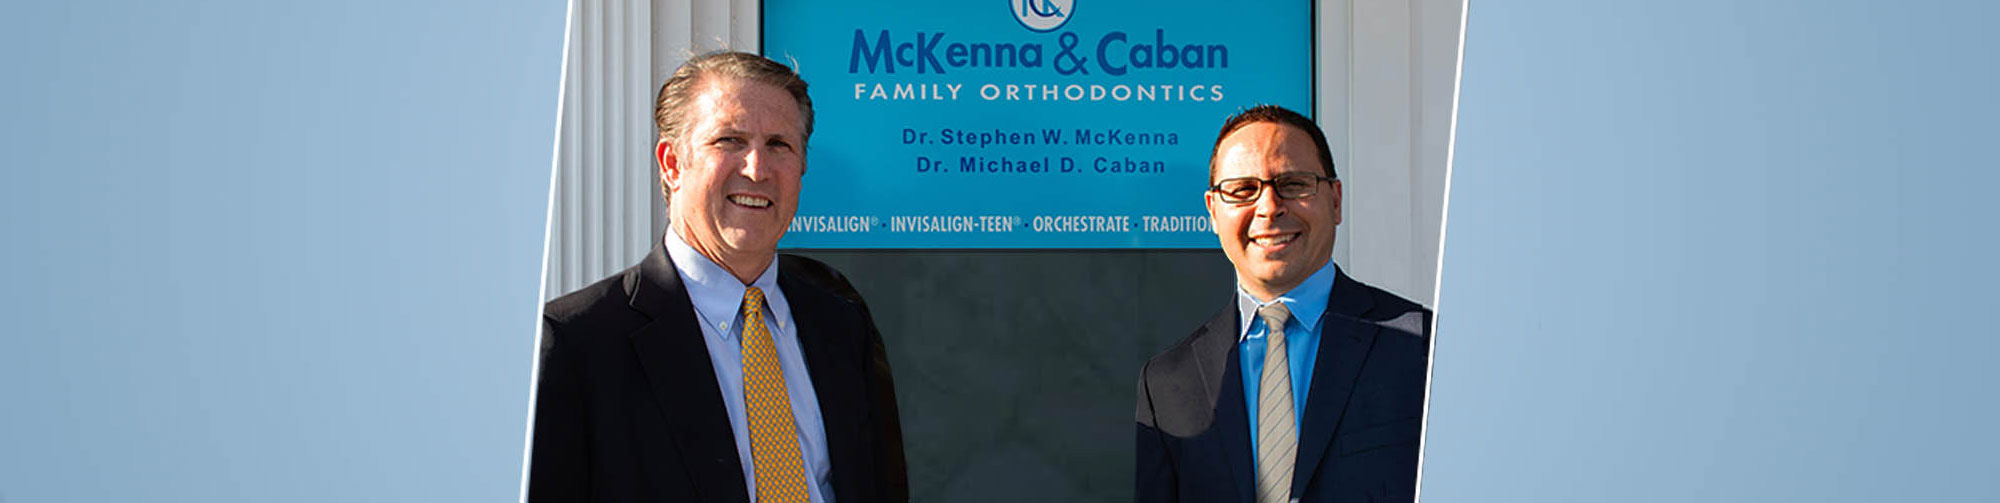 Dr. Caban and McKenna